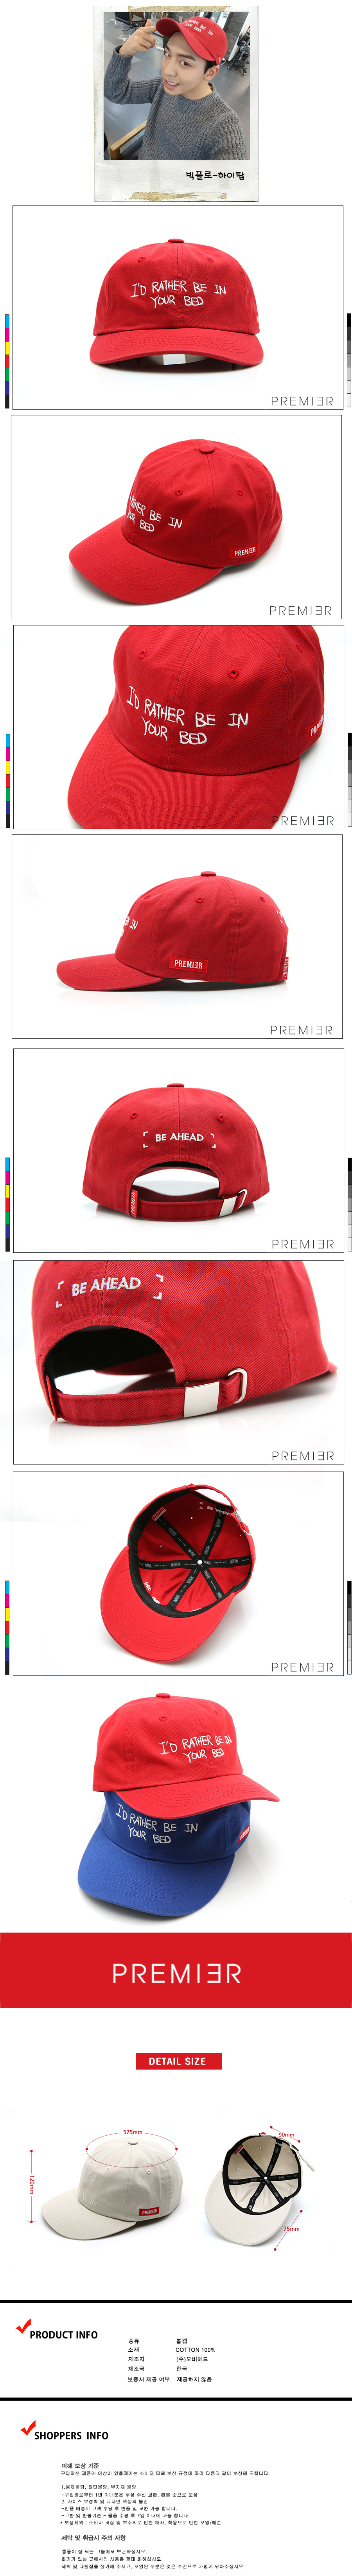 [ PREMIER ] [Premier] Washing Ball Cap RATHER BE Red (P758)